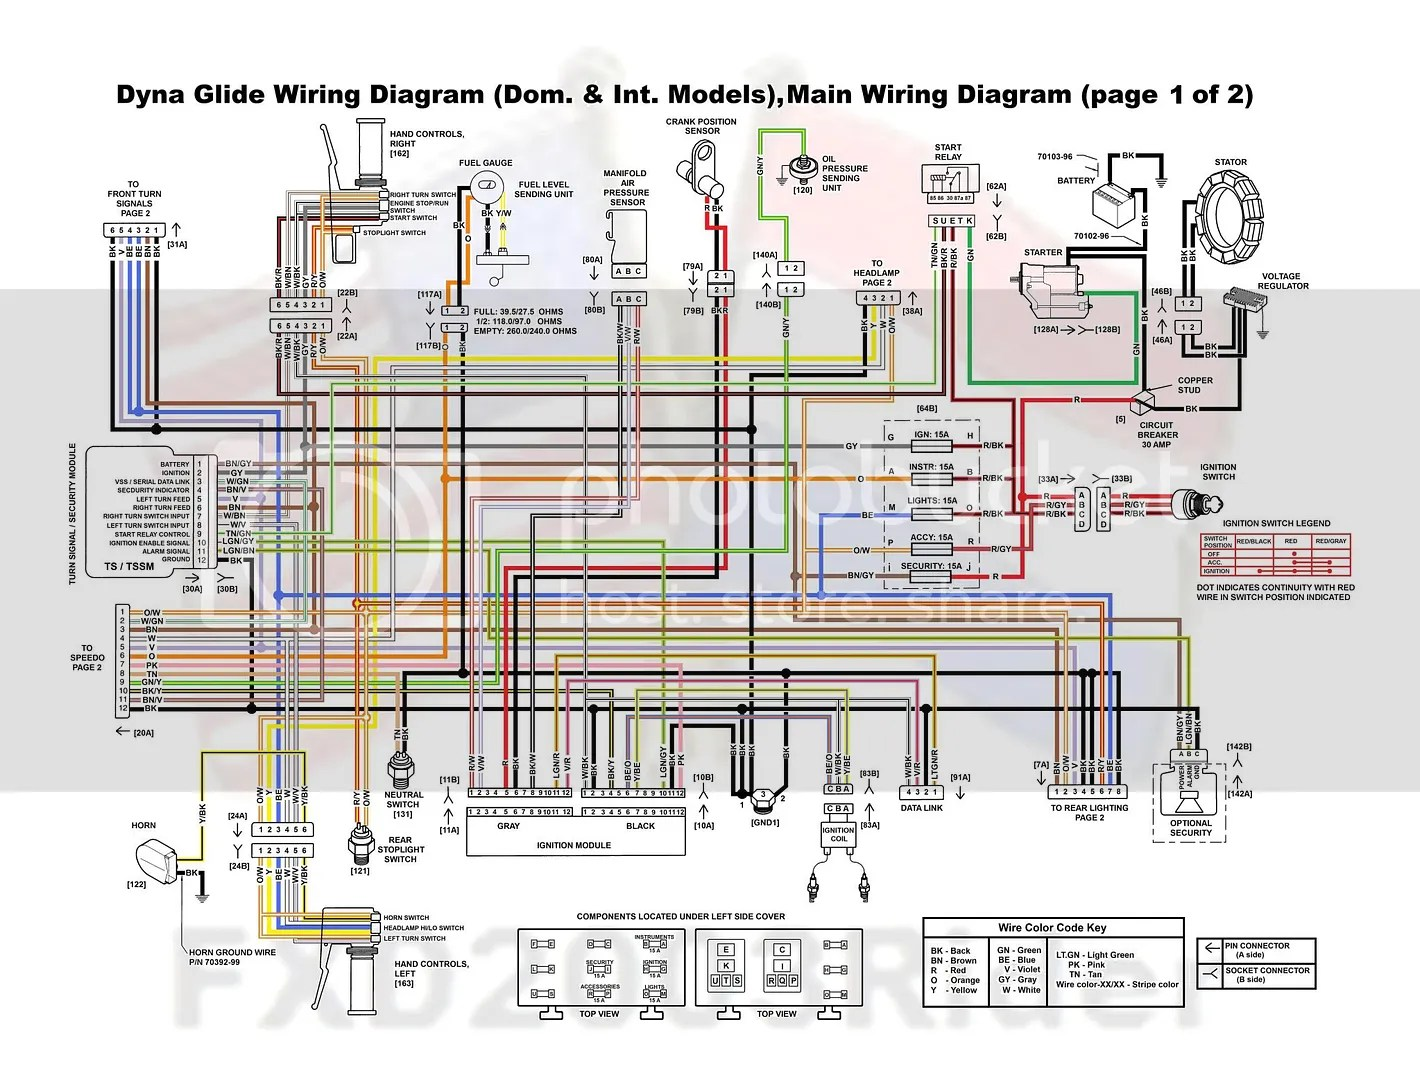 road king handlebar wiring plug diagrams wiring diagram yer 2002 road king wiring schematic [ 1420 x 1080 Pixel ]